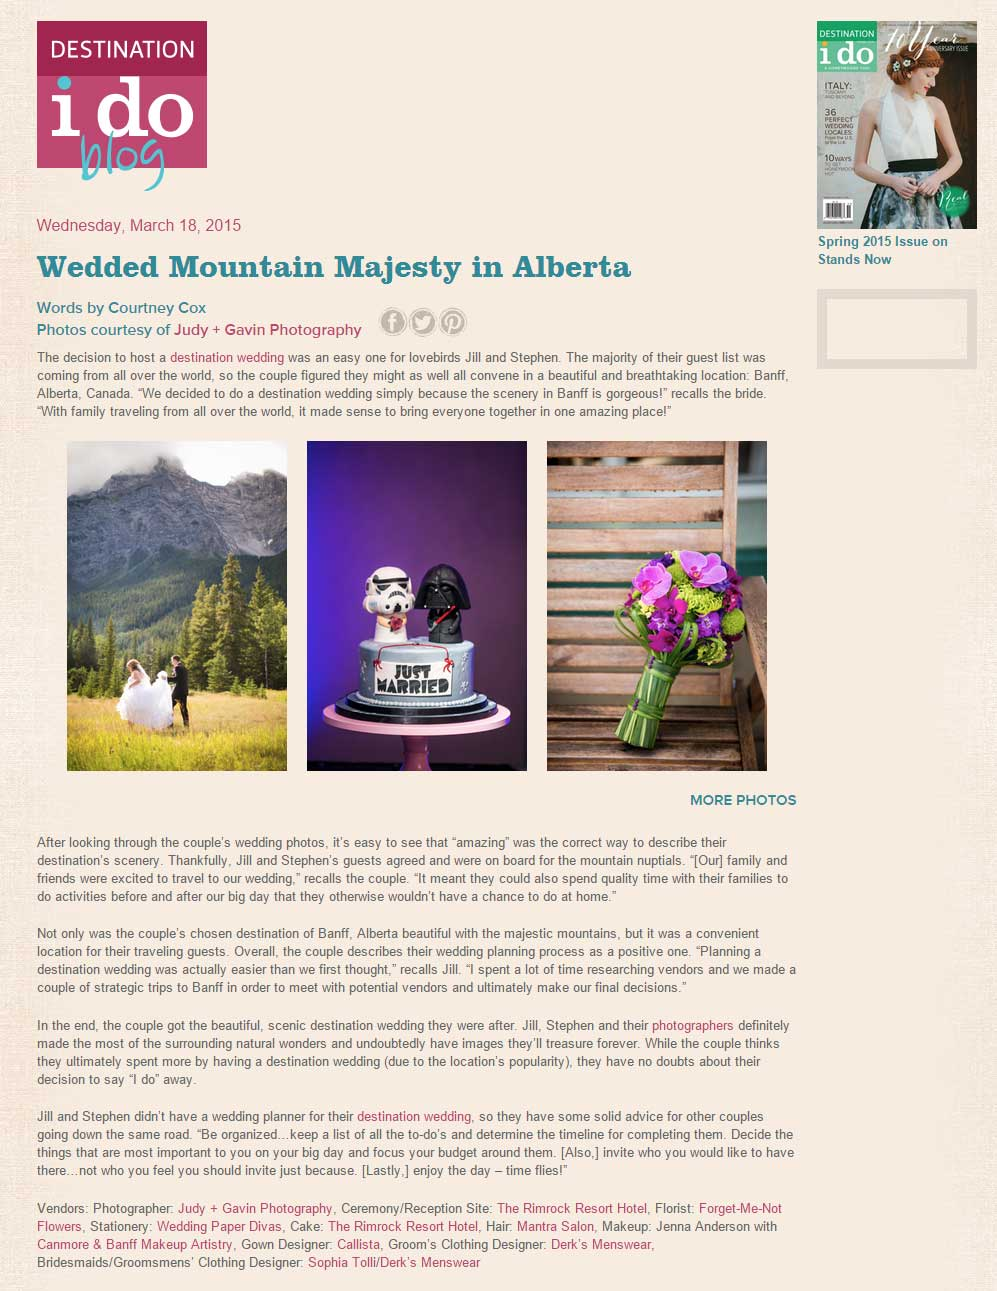 Destination-I-Do-Magazine---Wedded-Mountain-Majesty-in-Alberta